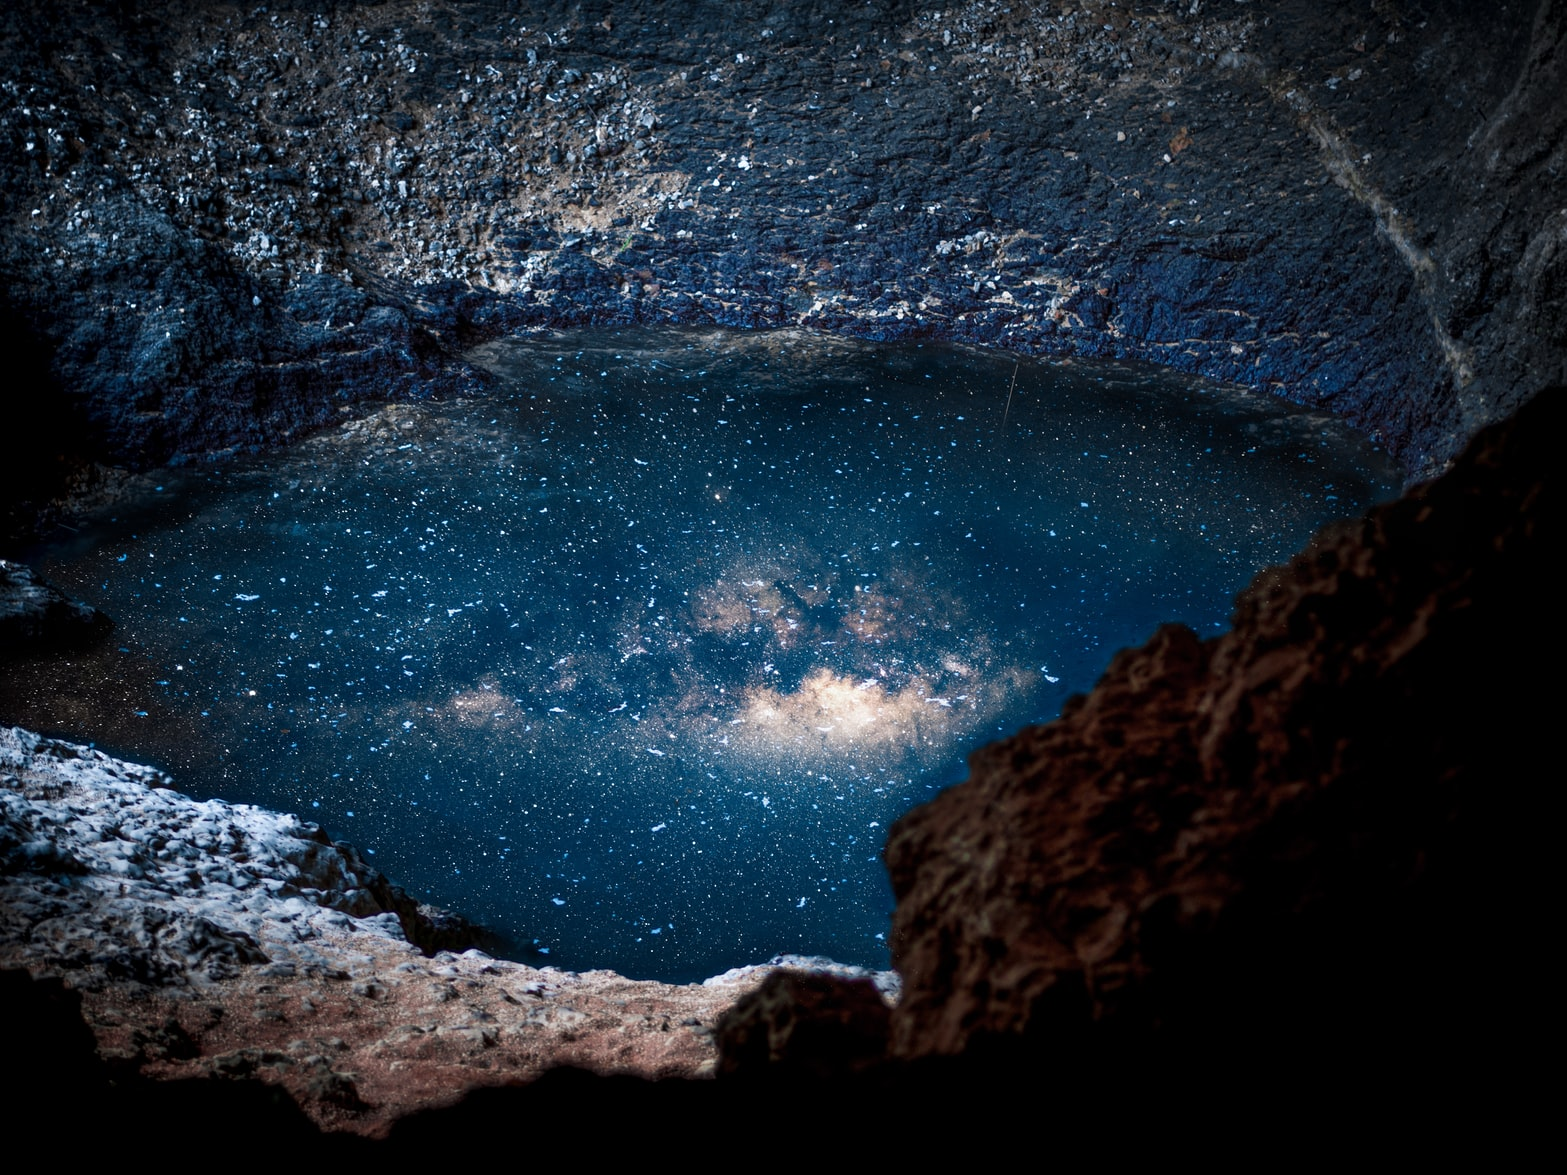 The Cosmos in a hole in the planet